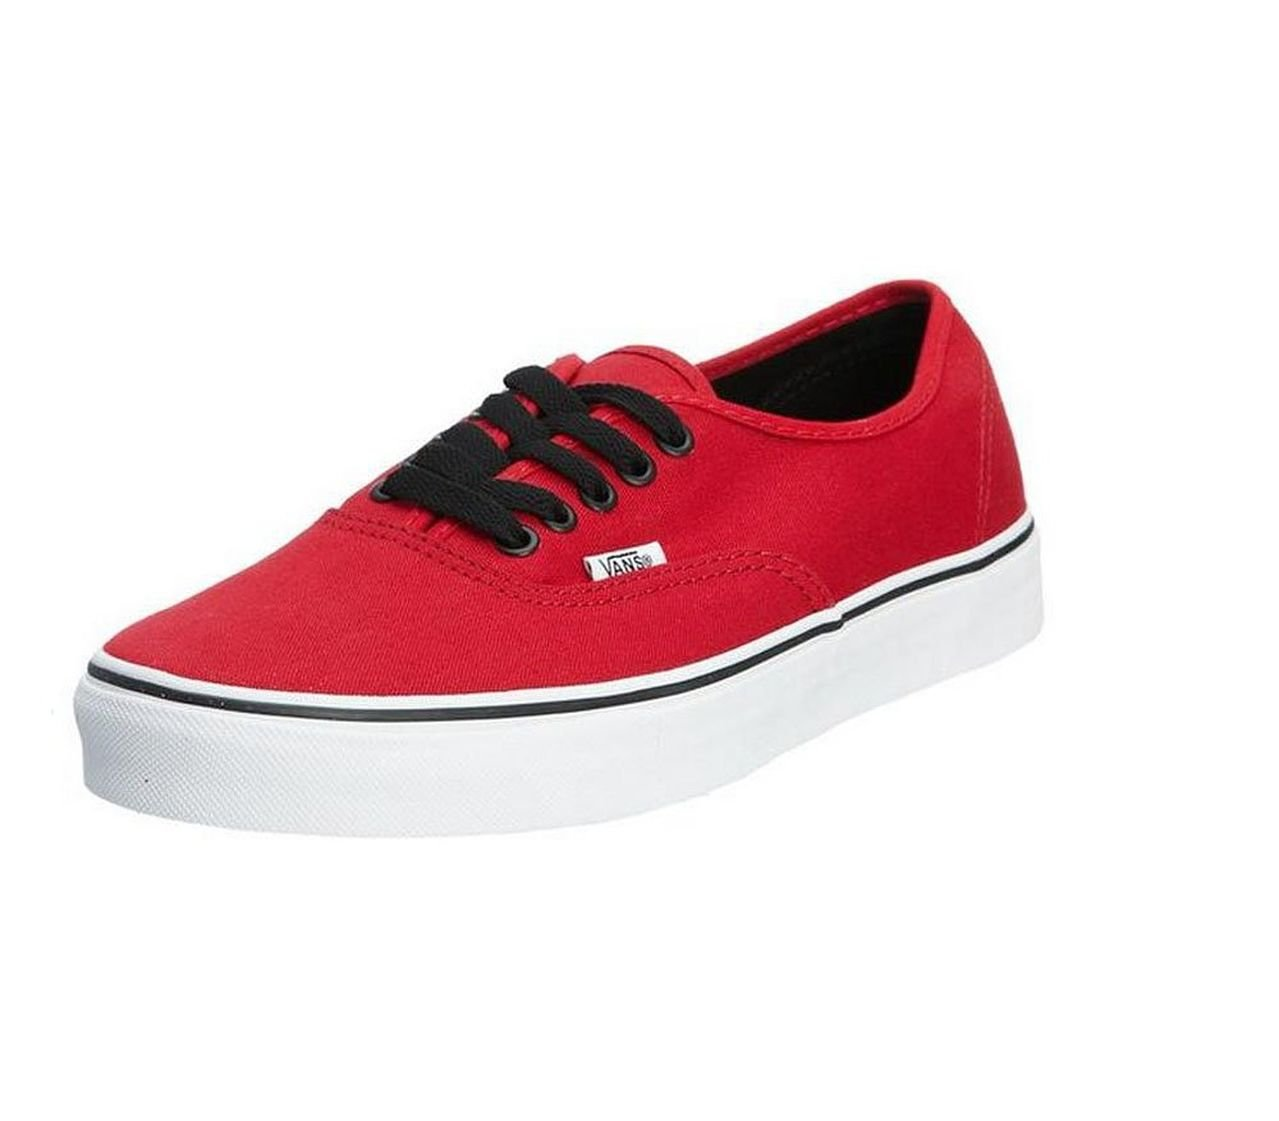 Vans Classic Authentic Canvas Shoes - Chili Pepper Red - 10.5